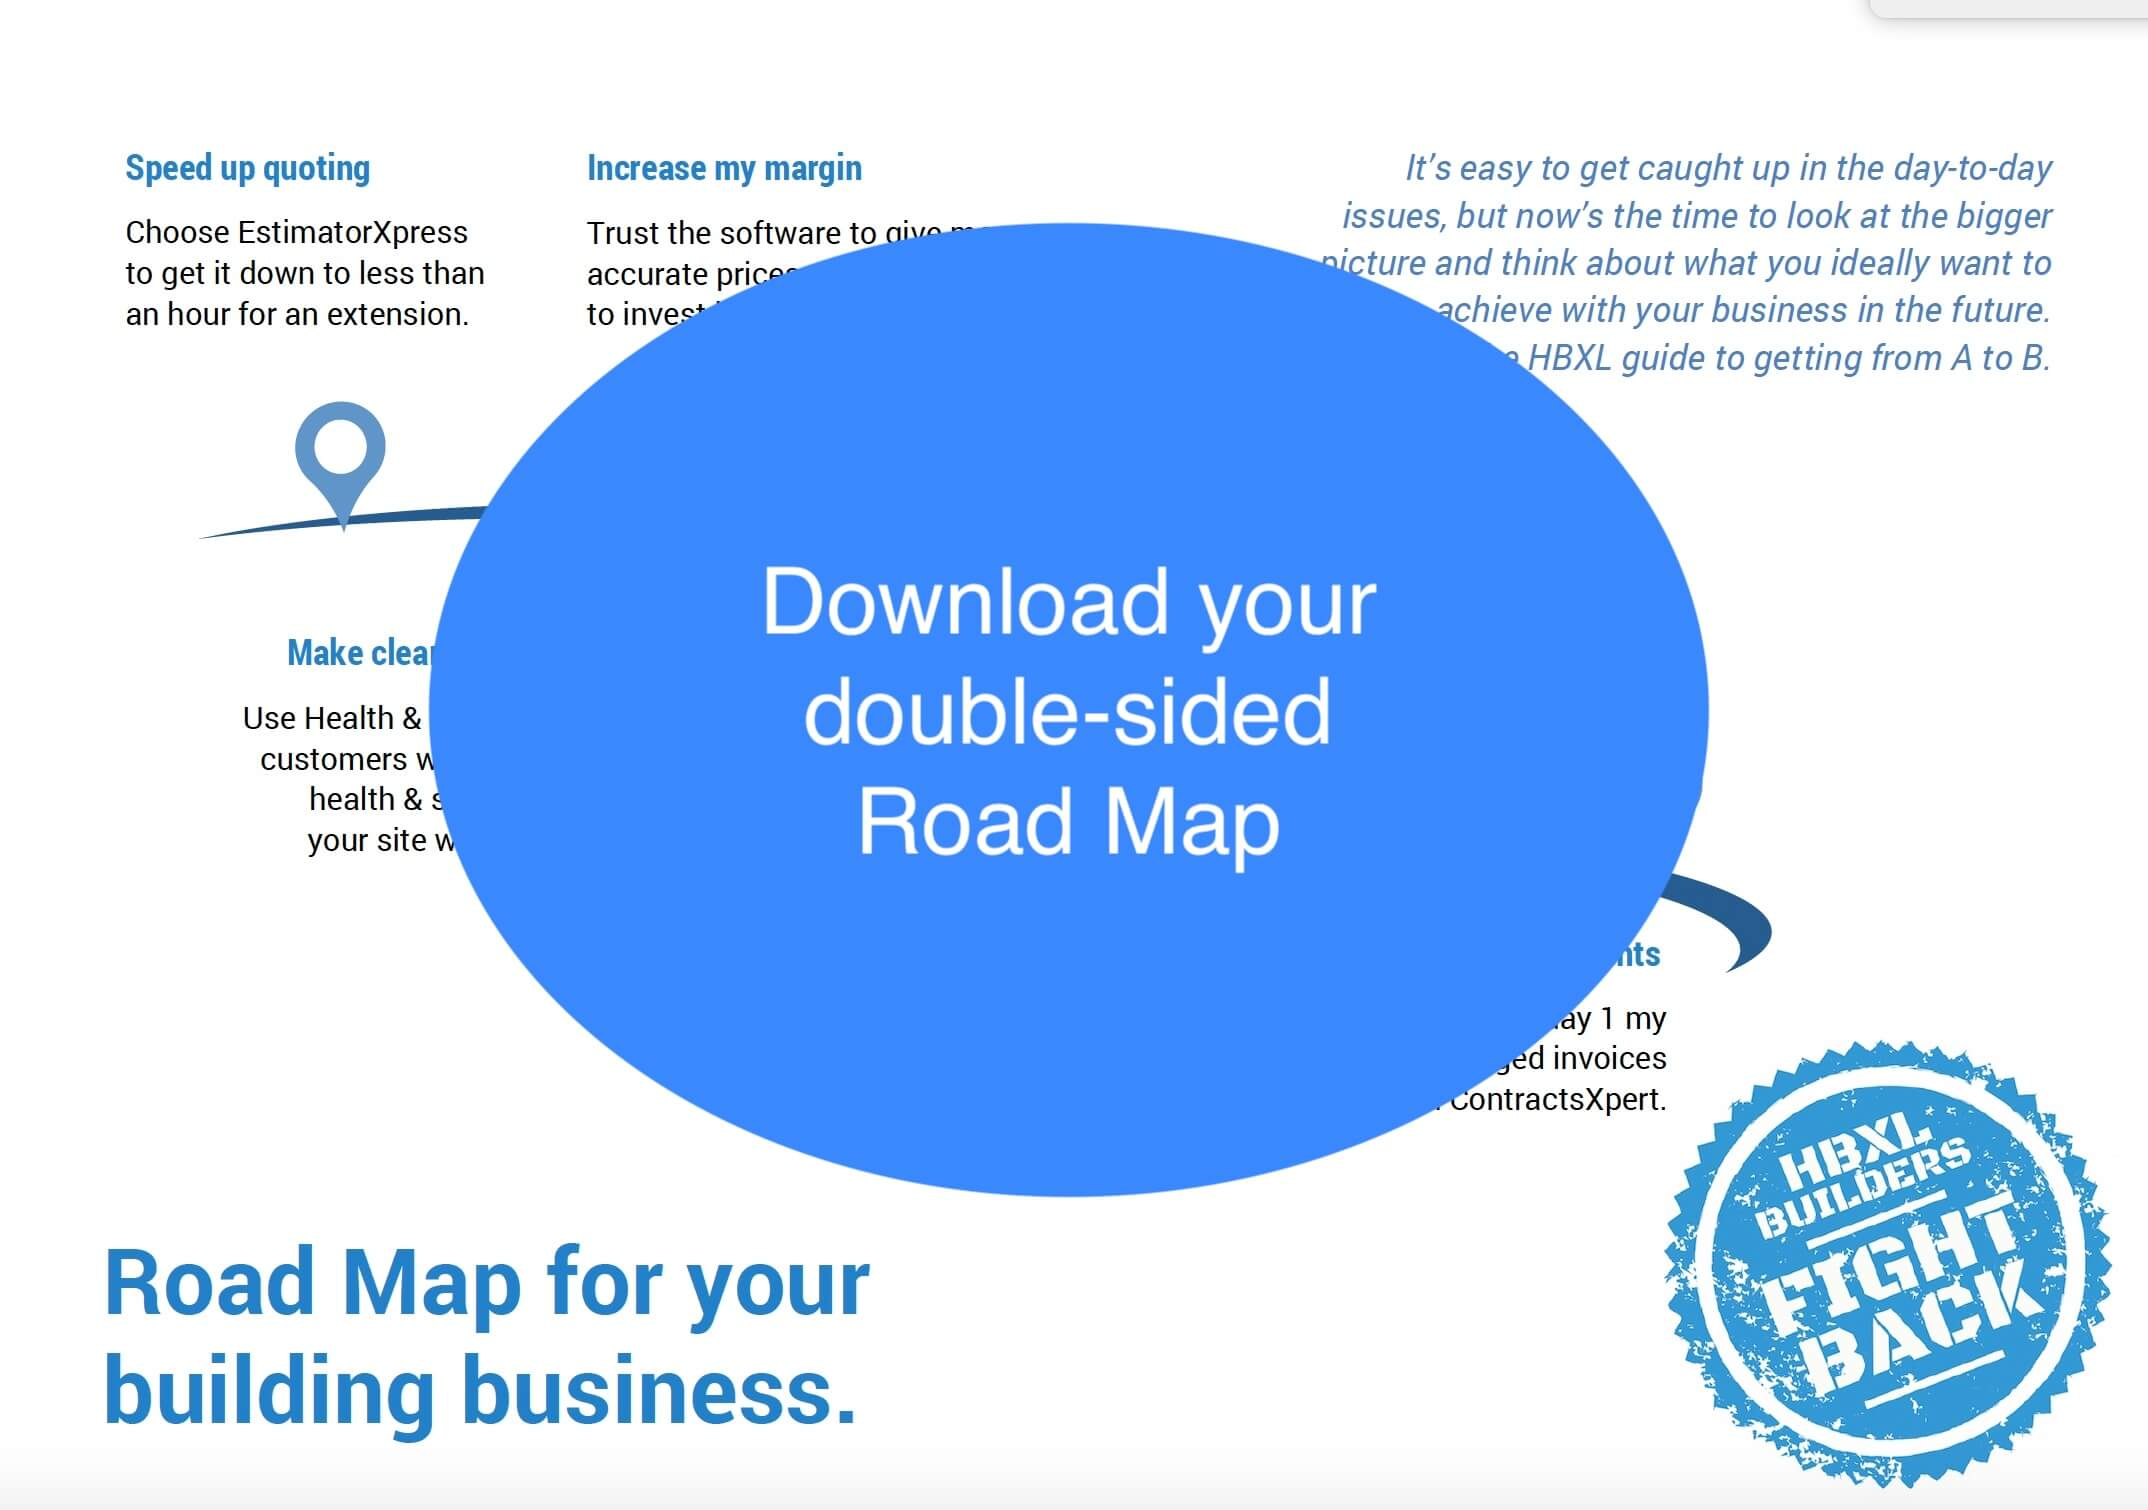 Download your double-sided Road Map